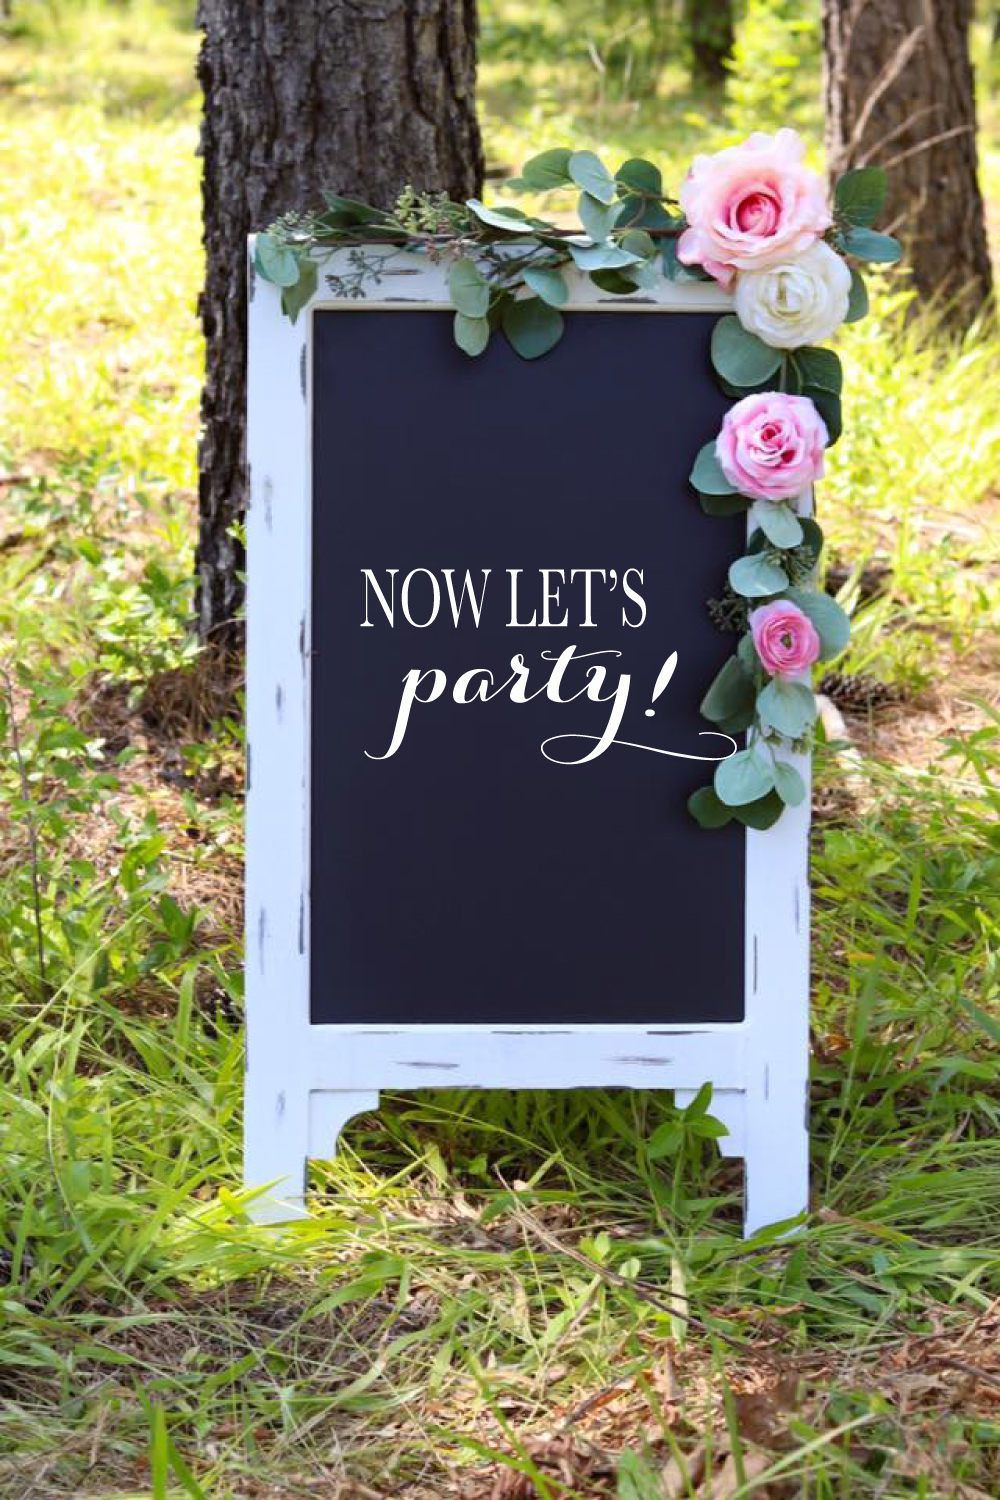 Wedding Decor Signs Magnificent Now Let's Party Chalkboard Easel Custom Wood Wedding Decor Sign Design Ideas